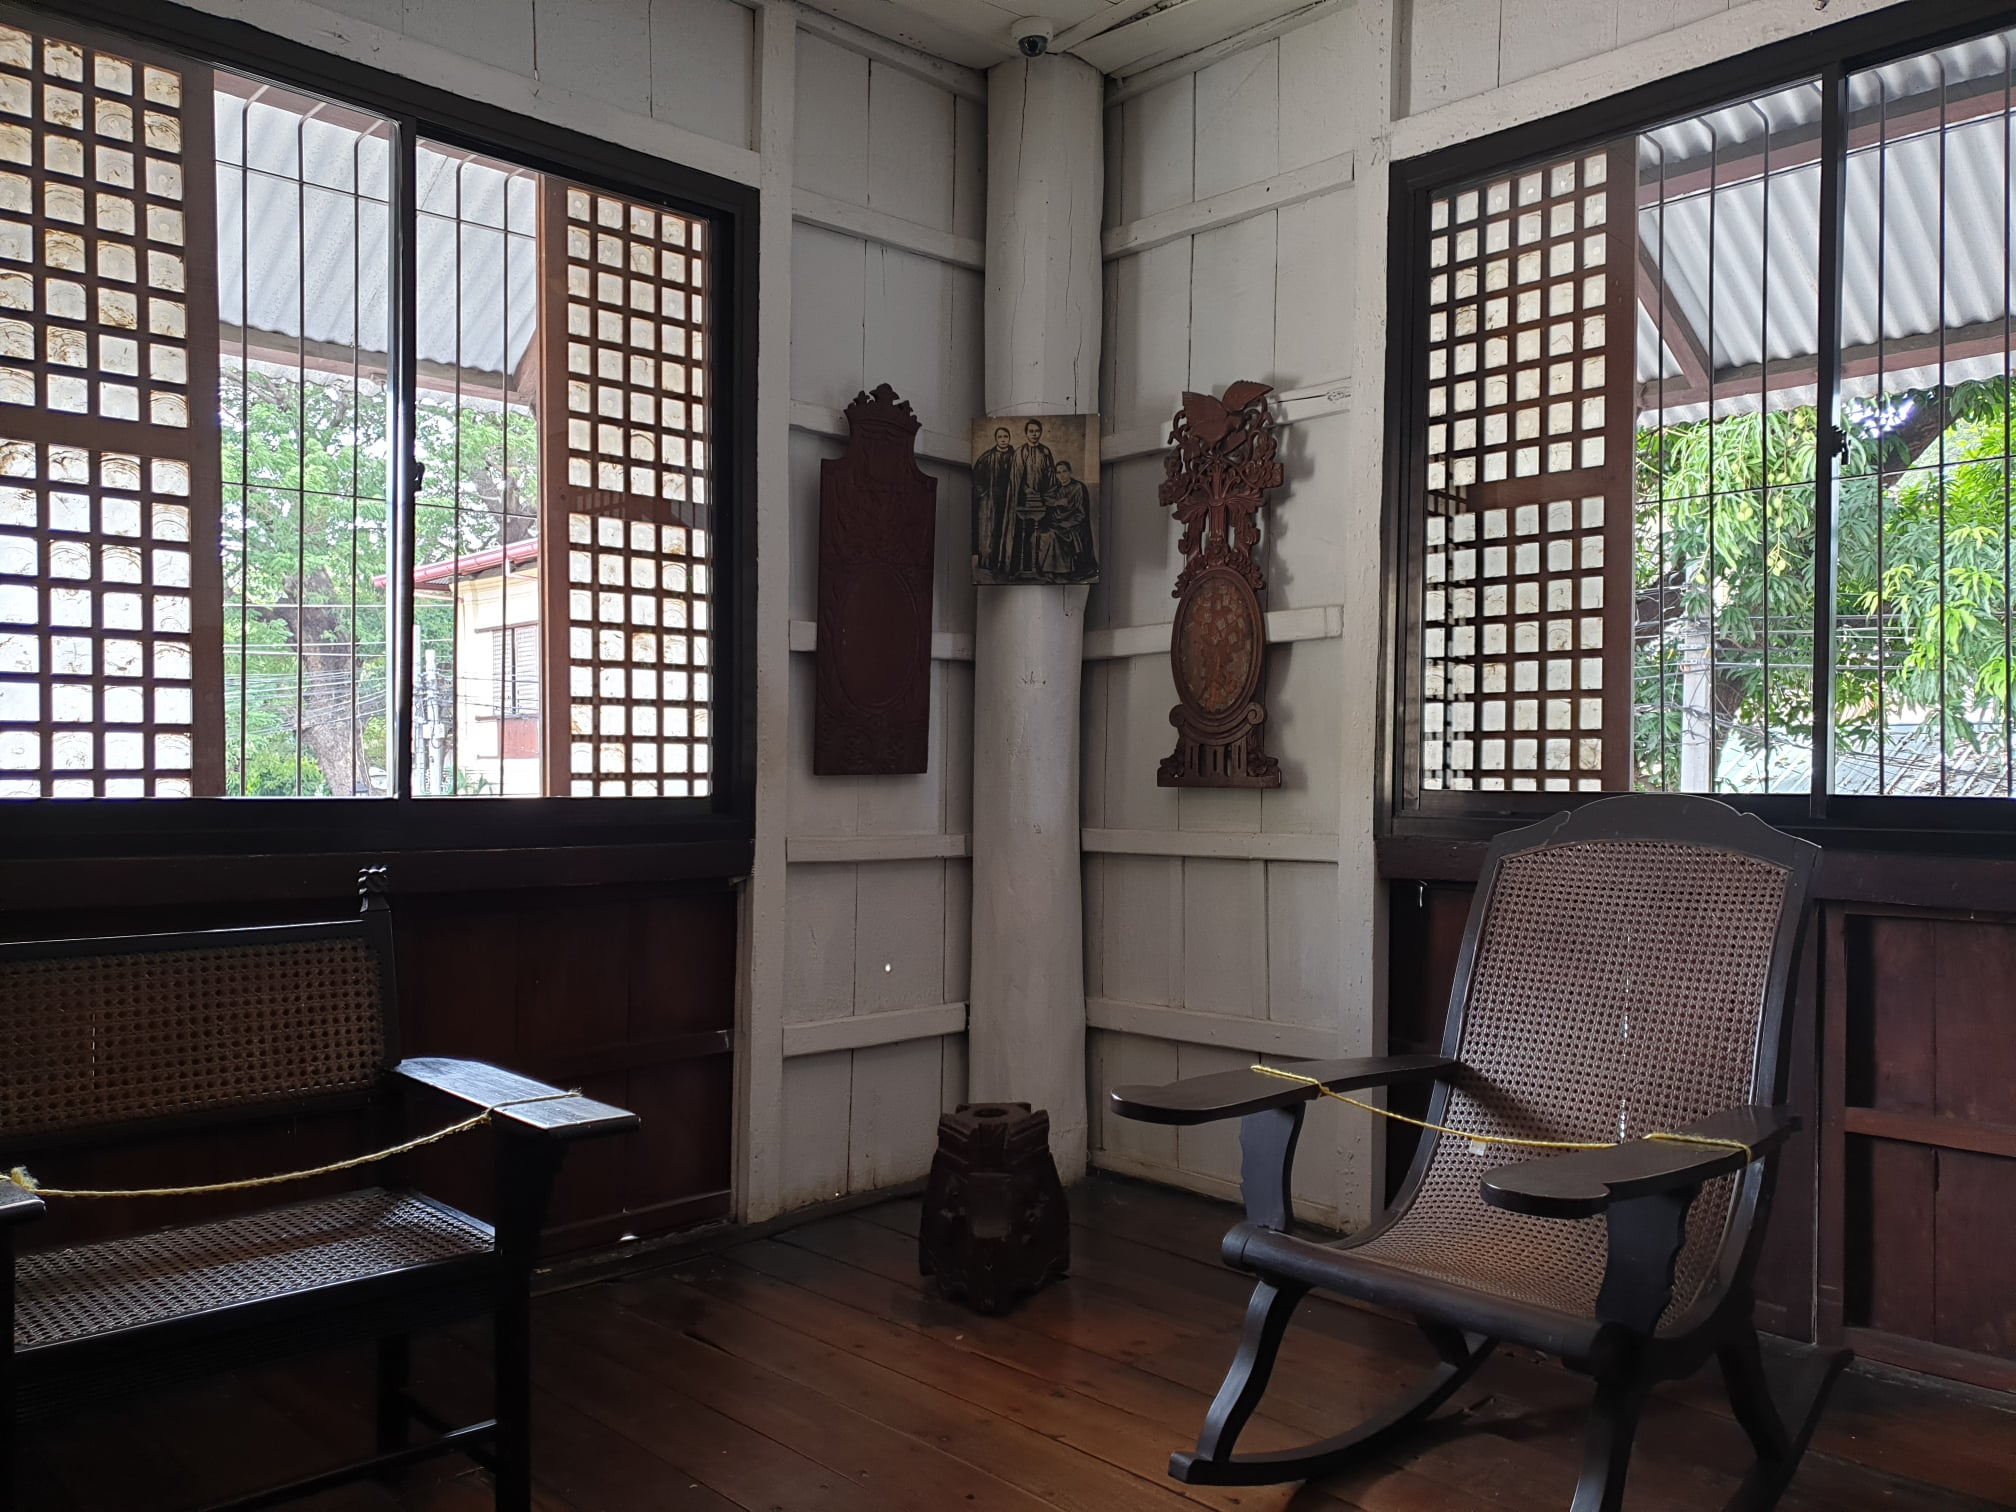 Corner of the master bedroom, showing prominent use of capis shell windows and Philippine hardwood (B. Balaguer, NMP AABHD)